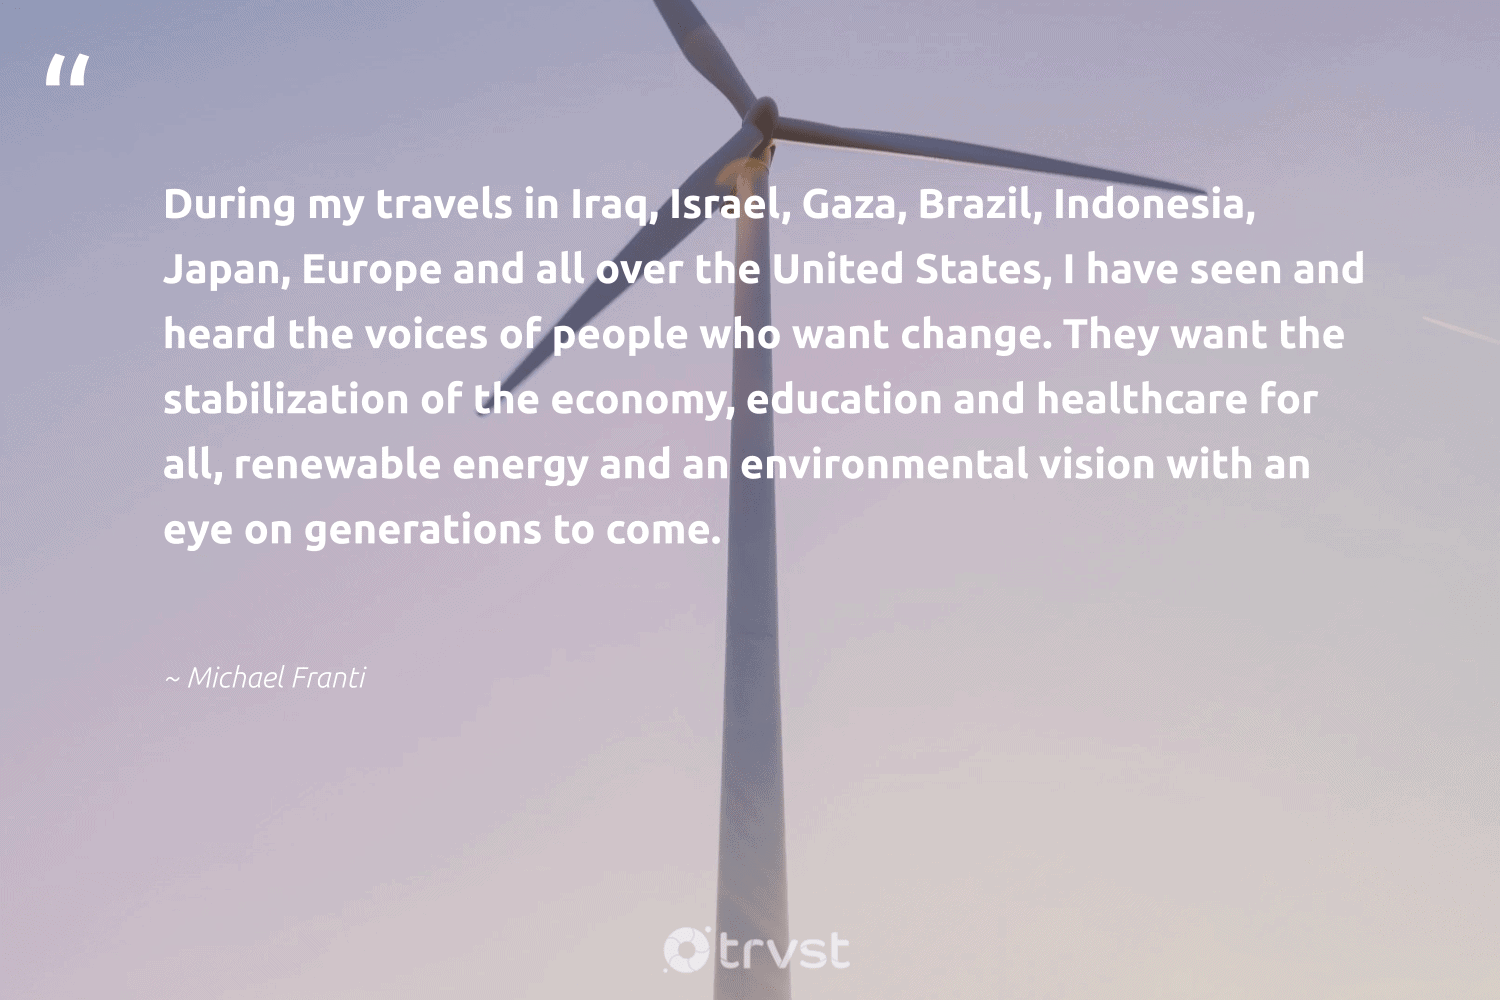 """""""During my travels in Iraq, Israel, Gaza, Brazil, Indonesia, Japan, Europe and all over the United States, I have seen and heard the voices of people who want change. They want the stabilization of the economy, education and healthcare for all, renewable energy and an environmental vision with an eye on generations to come.""""  - Michael Franti #trvst #quotes #renewableenergy #environmental #energy #renewable #education #cleanenergy #100percentclean #livegreen #nature #dosomething"""